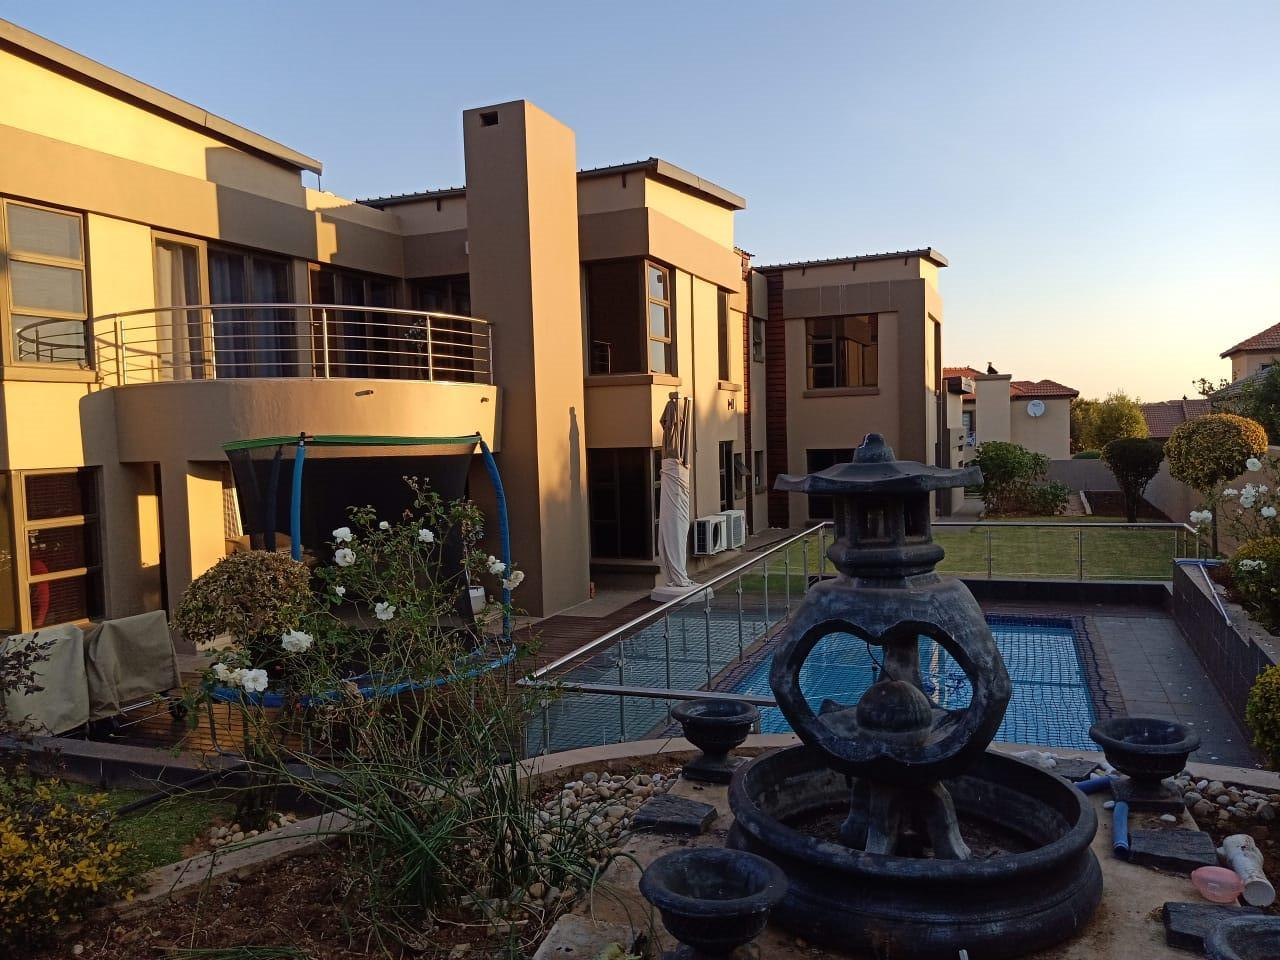 Property for sale in Centurion